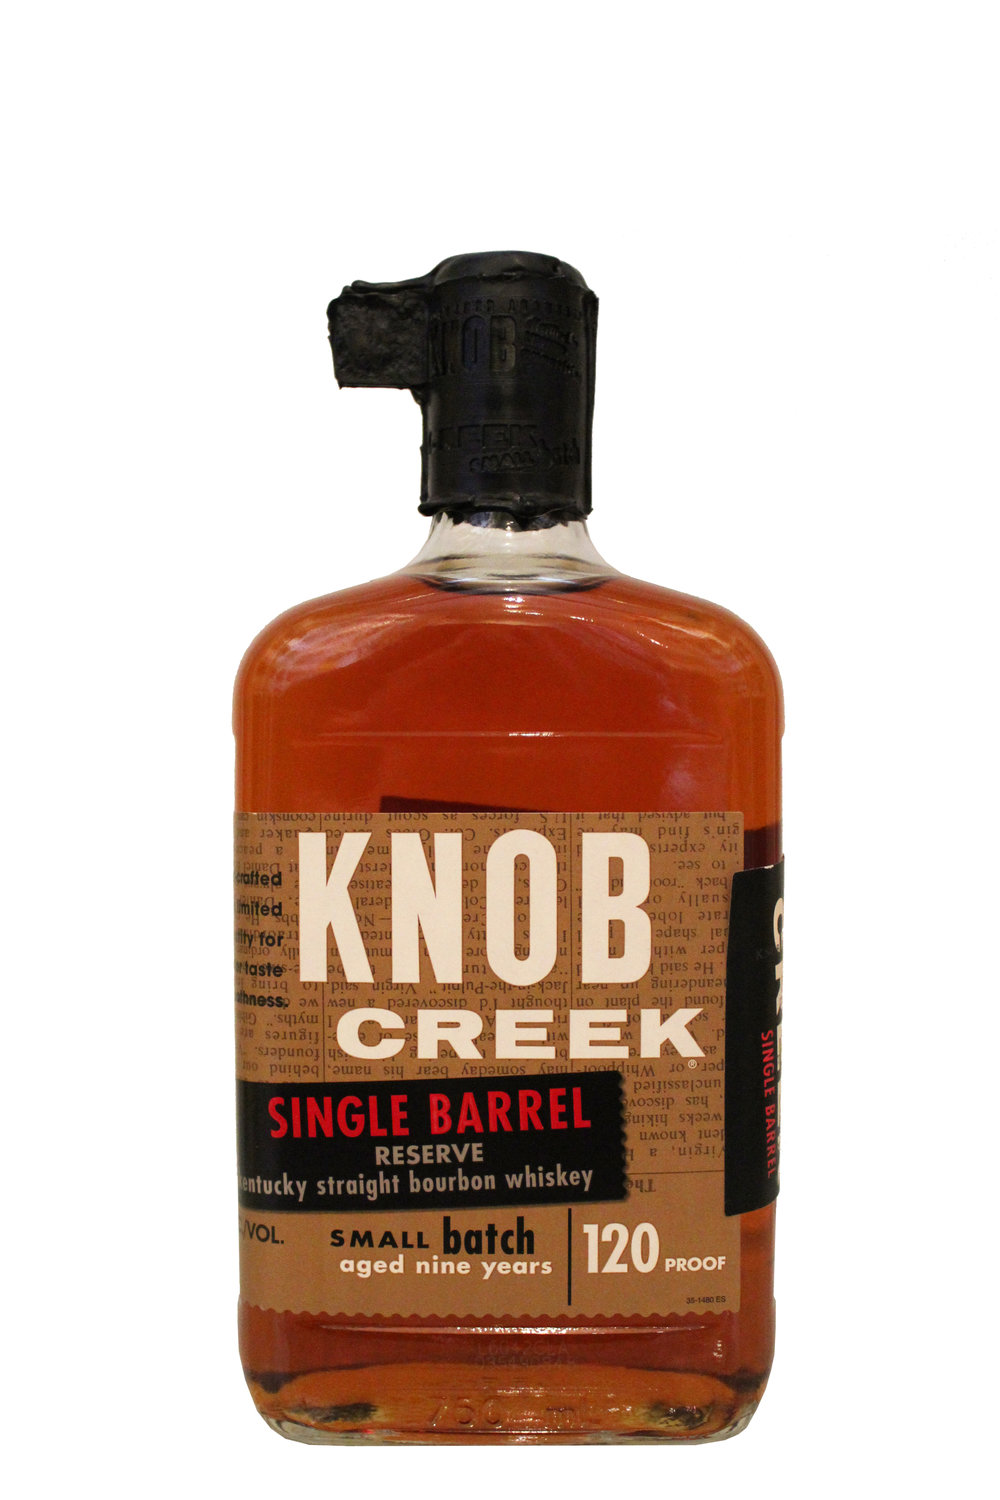 Single Barrel Reserve  Knob Creek,  Kentucky